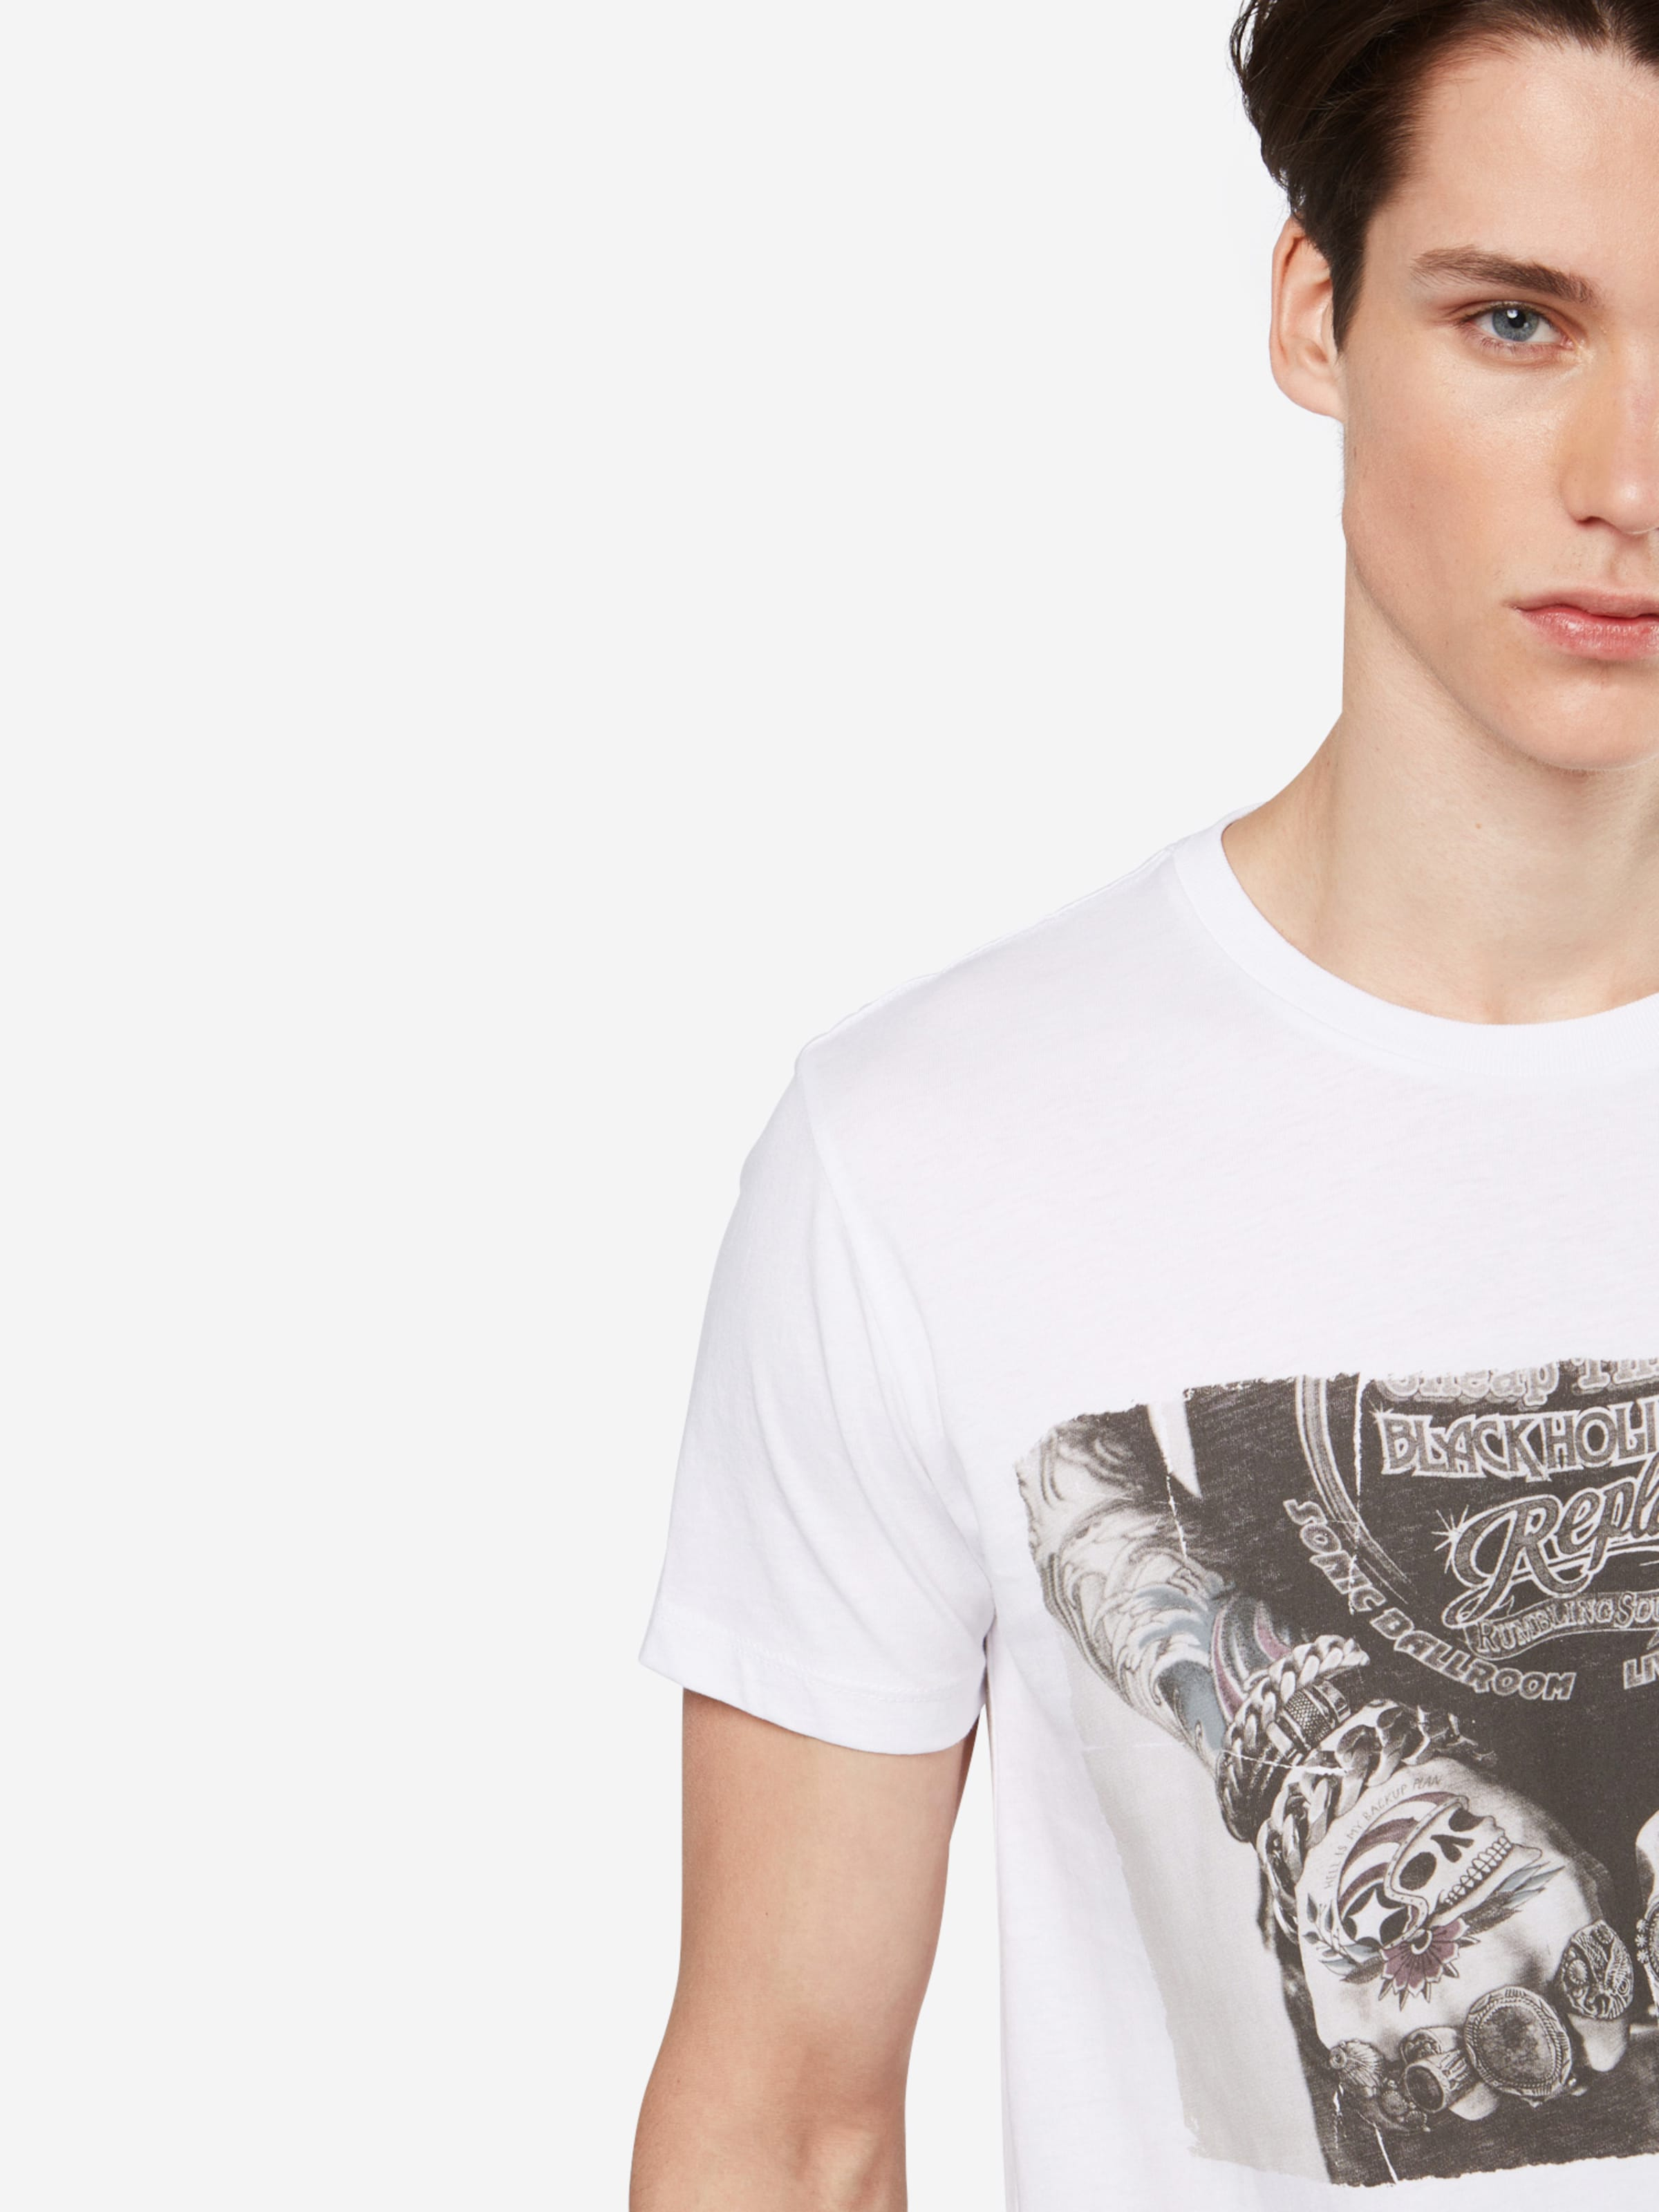 REPLAY T-Shirt Sneakernews 100% Authentisch nvImp